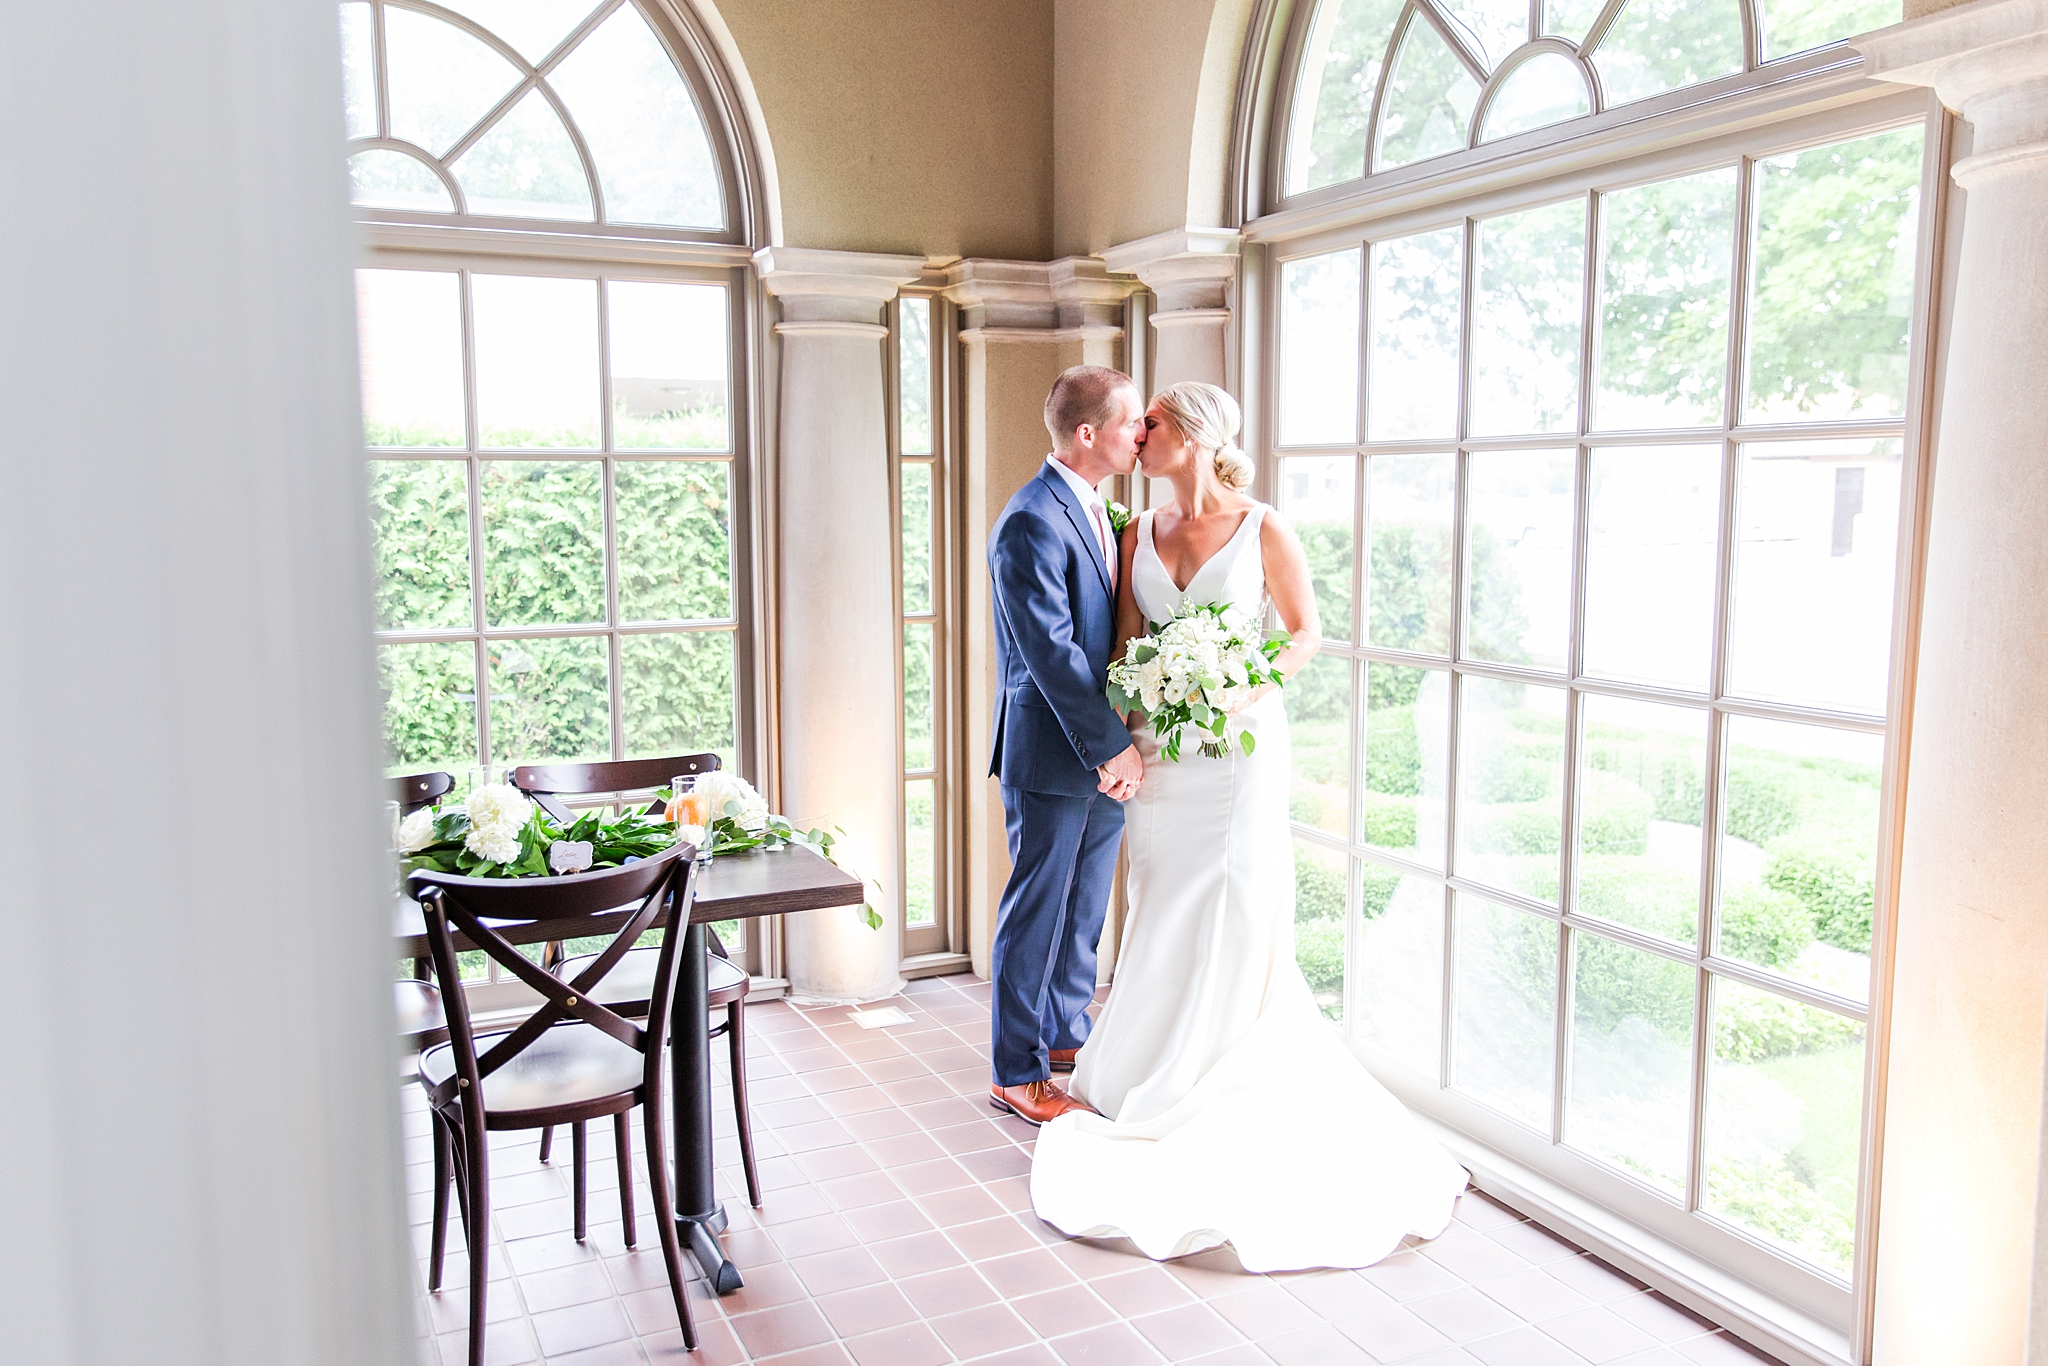 chapman-house-casually-chic-wedding-photography-in-rochester-michigan-by-courtney-carolyn-photography_0024.jpg